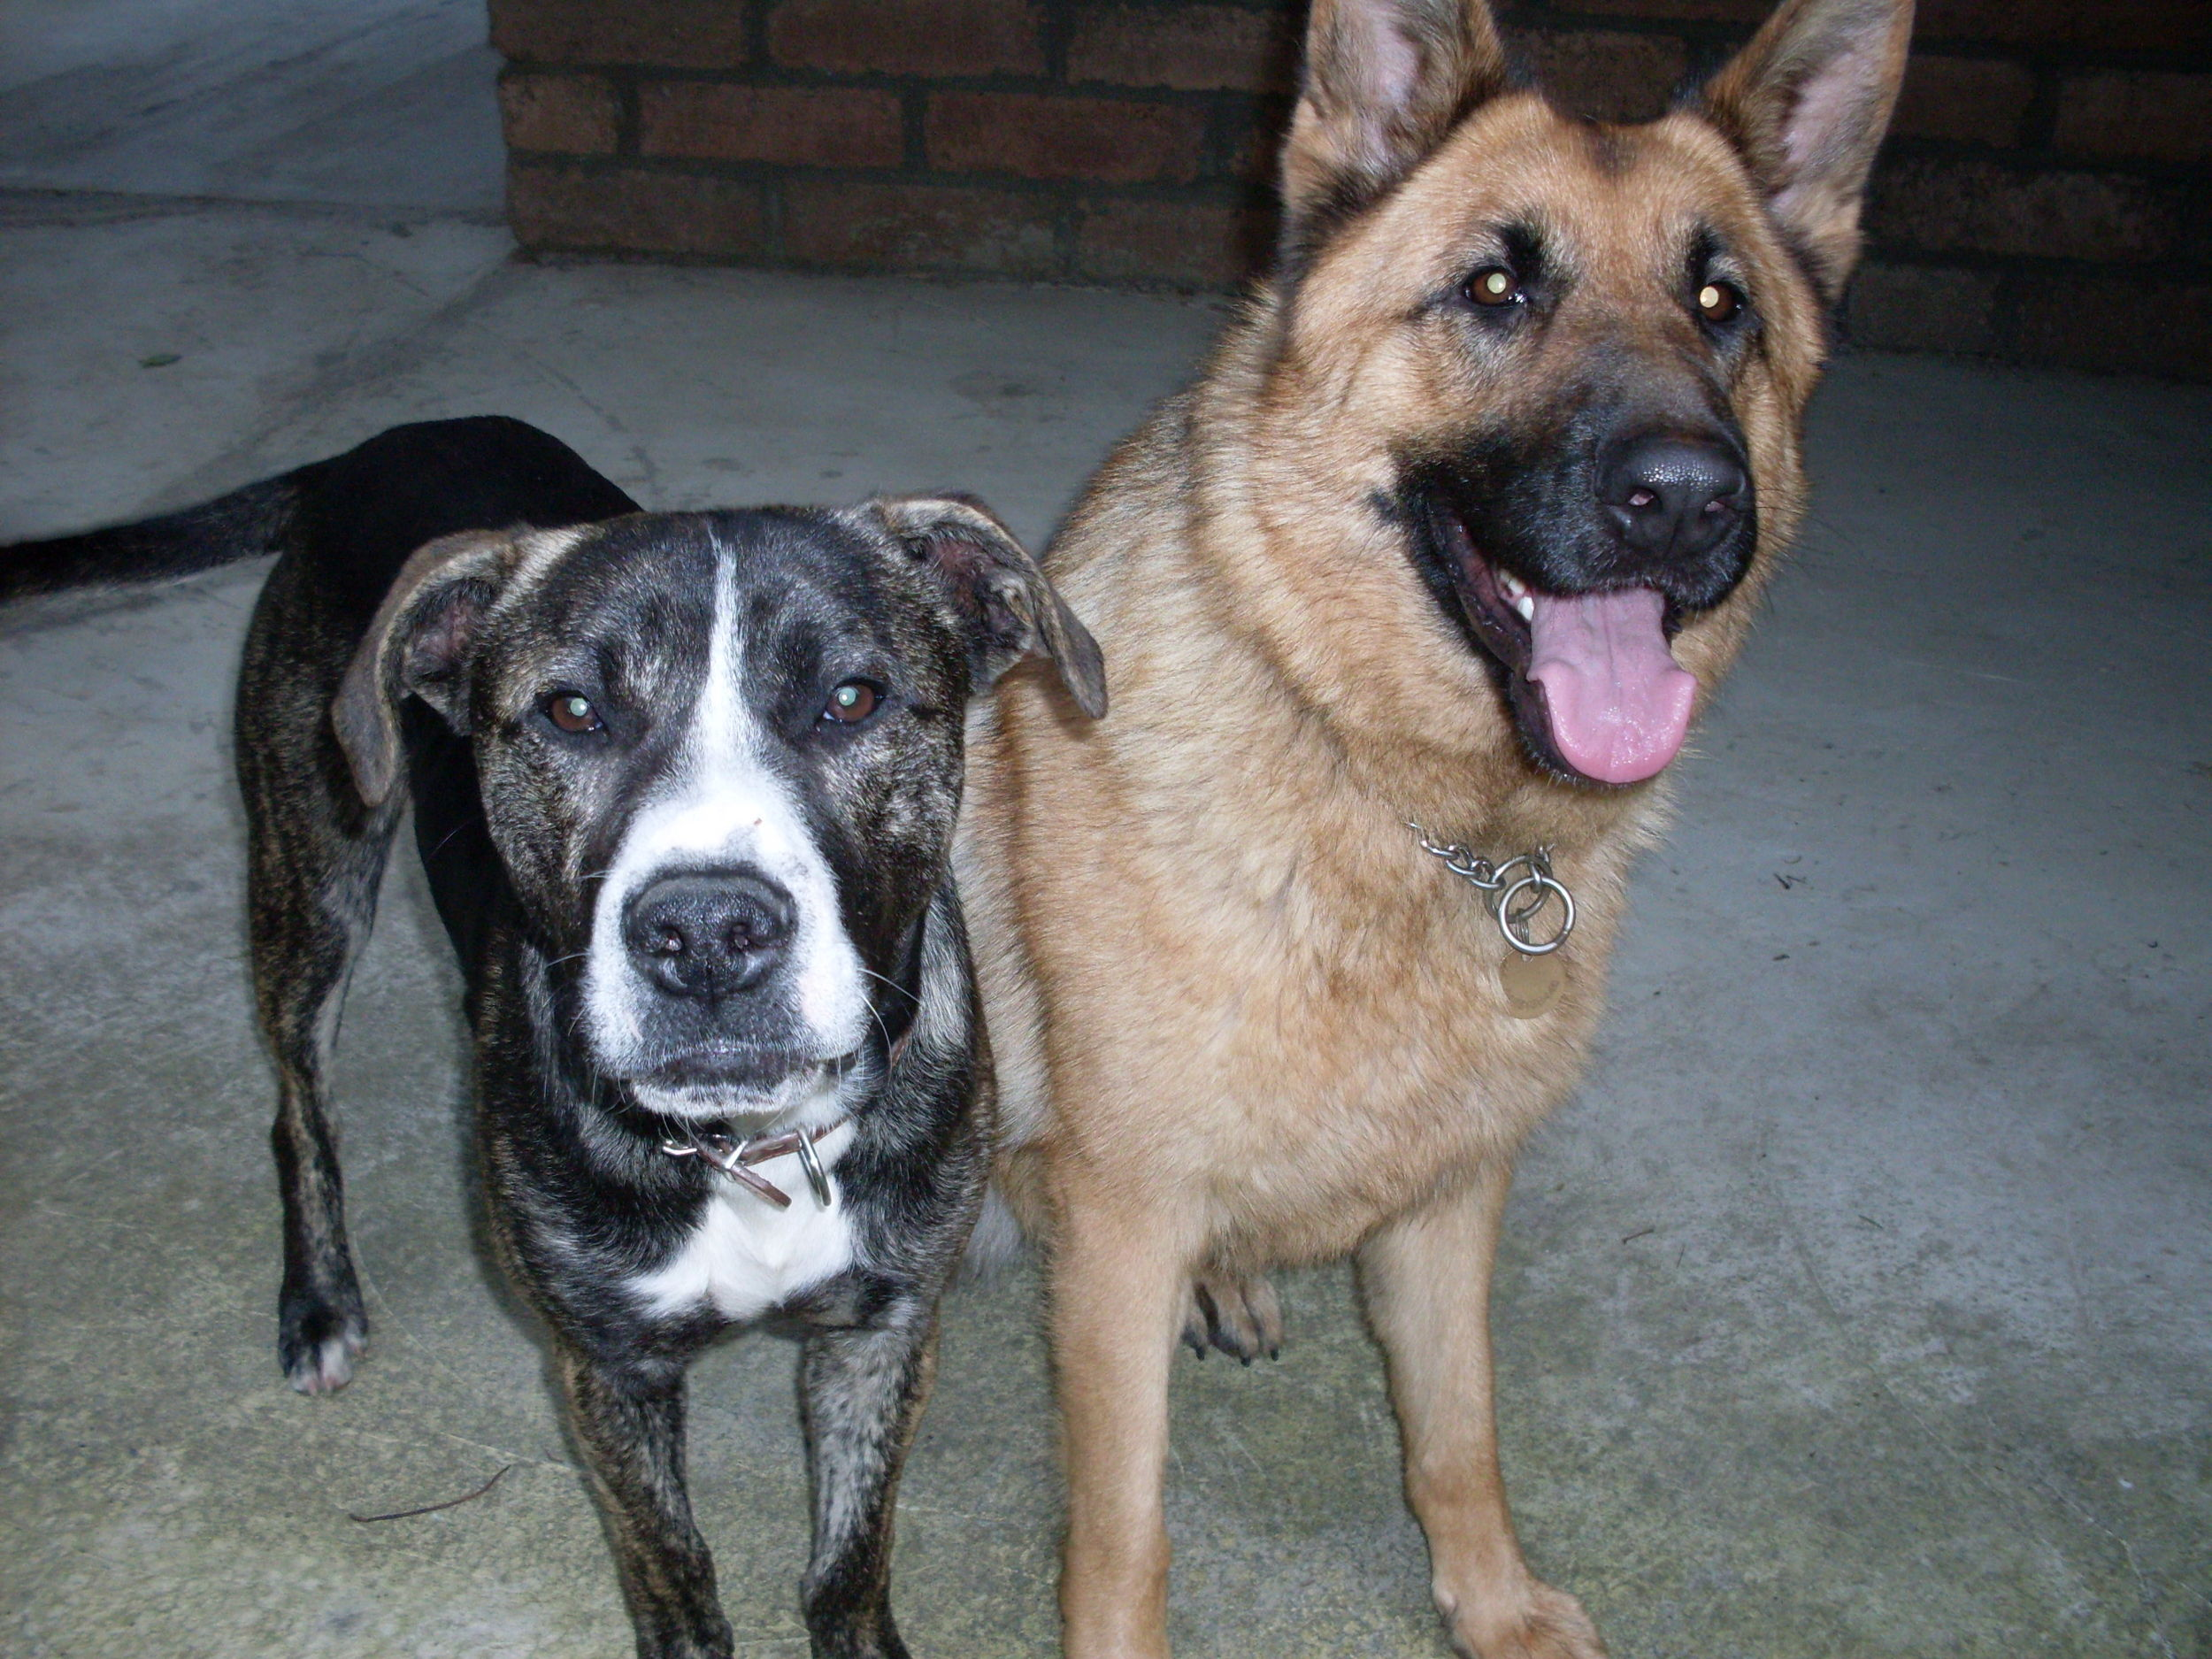 Dogs_016